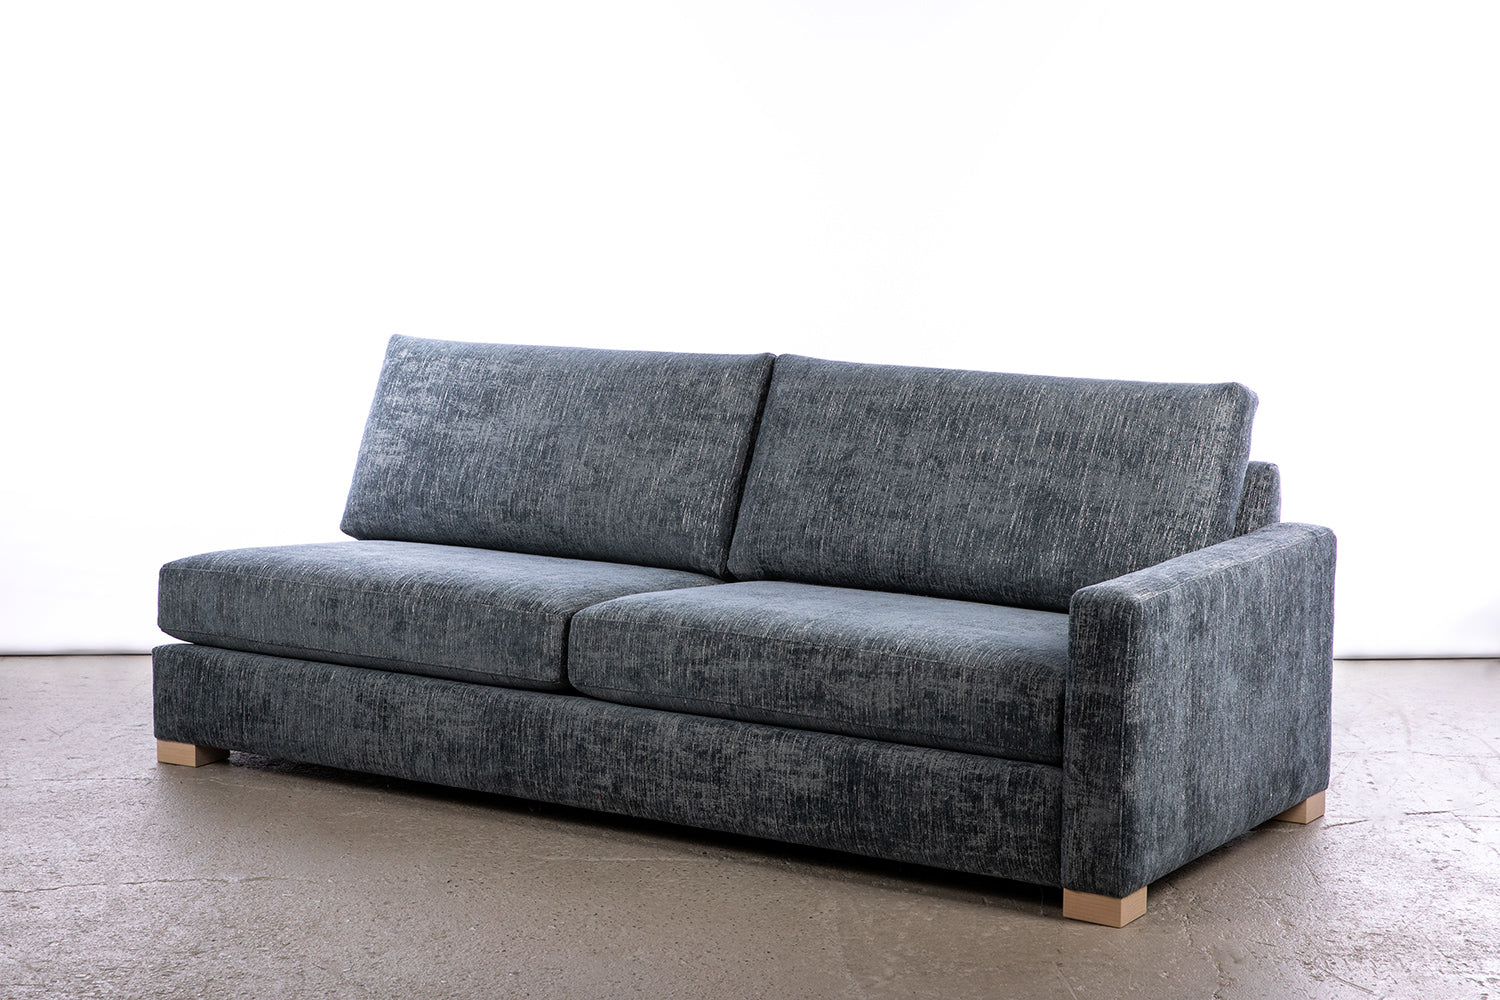 ffabb coasty slim - sofa in RHF riptide chenille